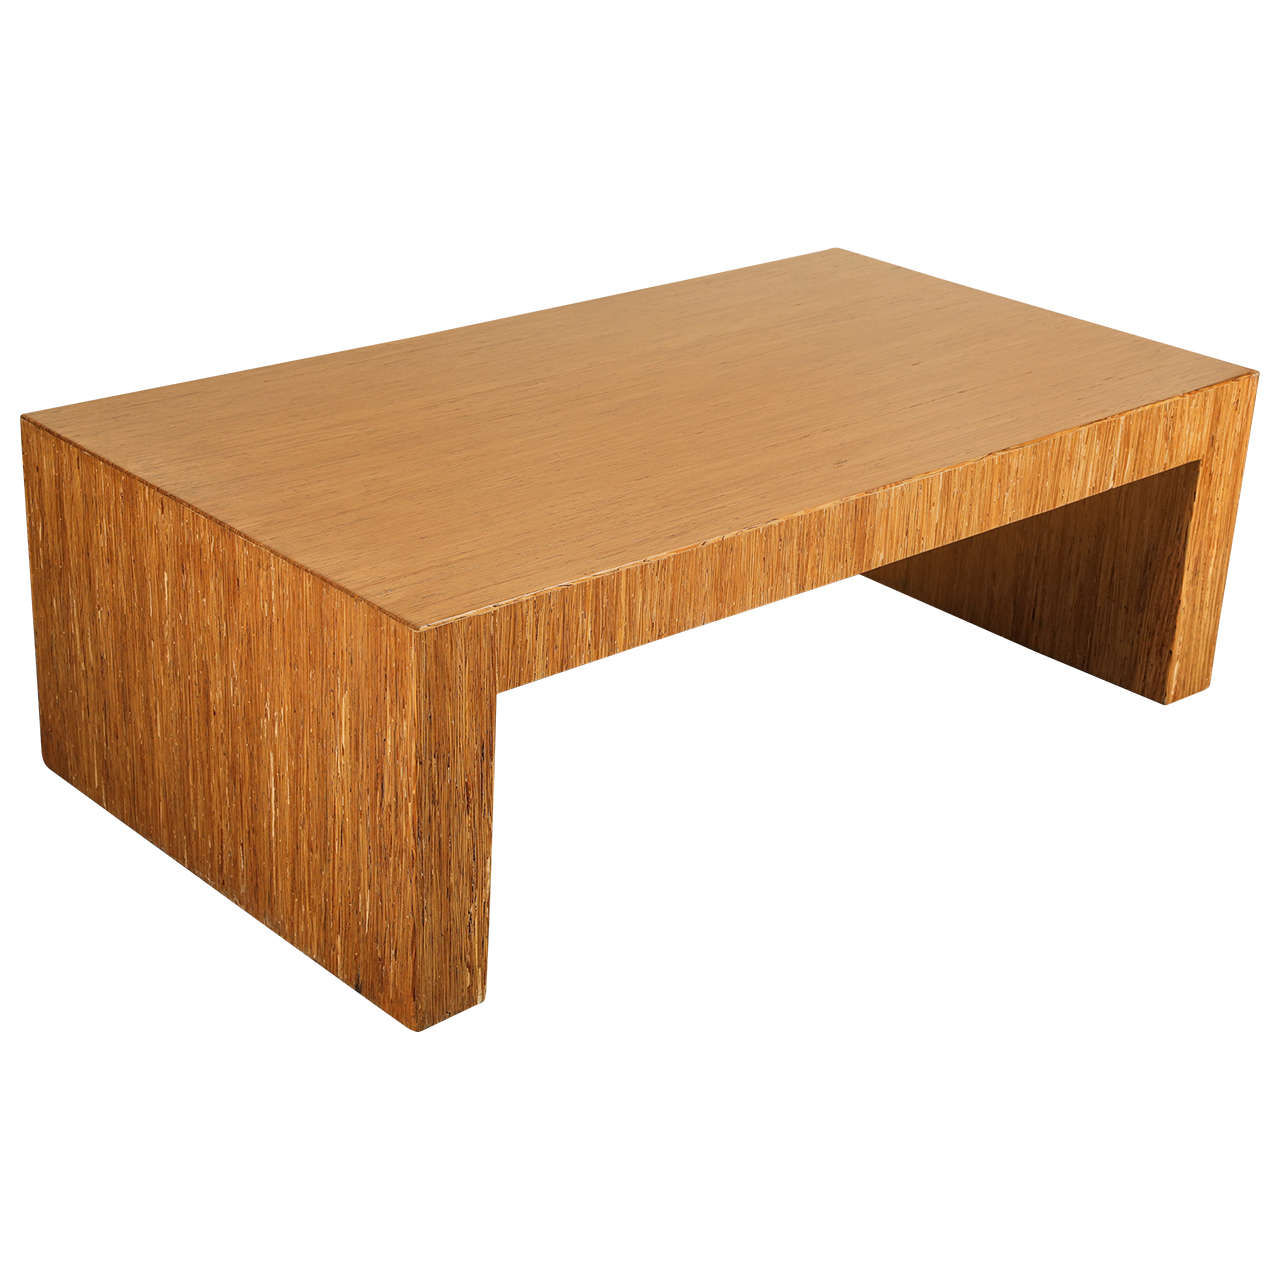 simple minimalist coffee table with striated wood veneer